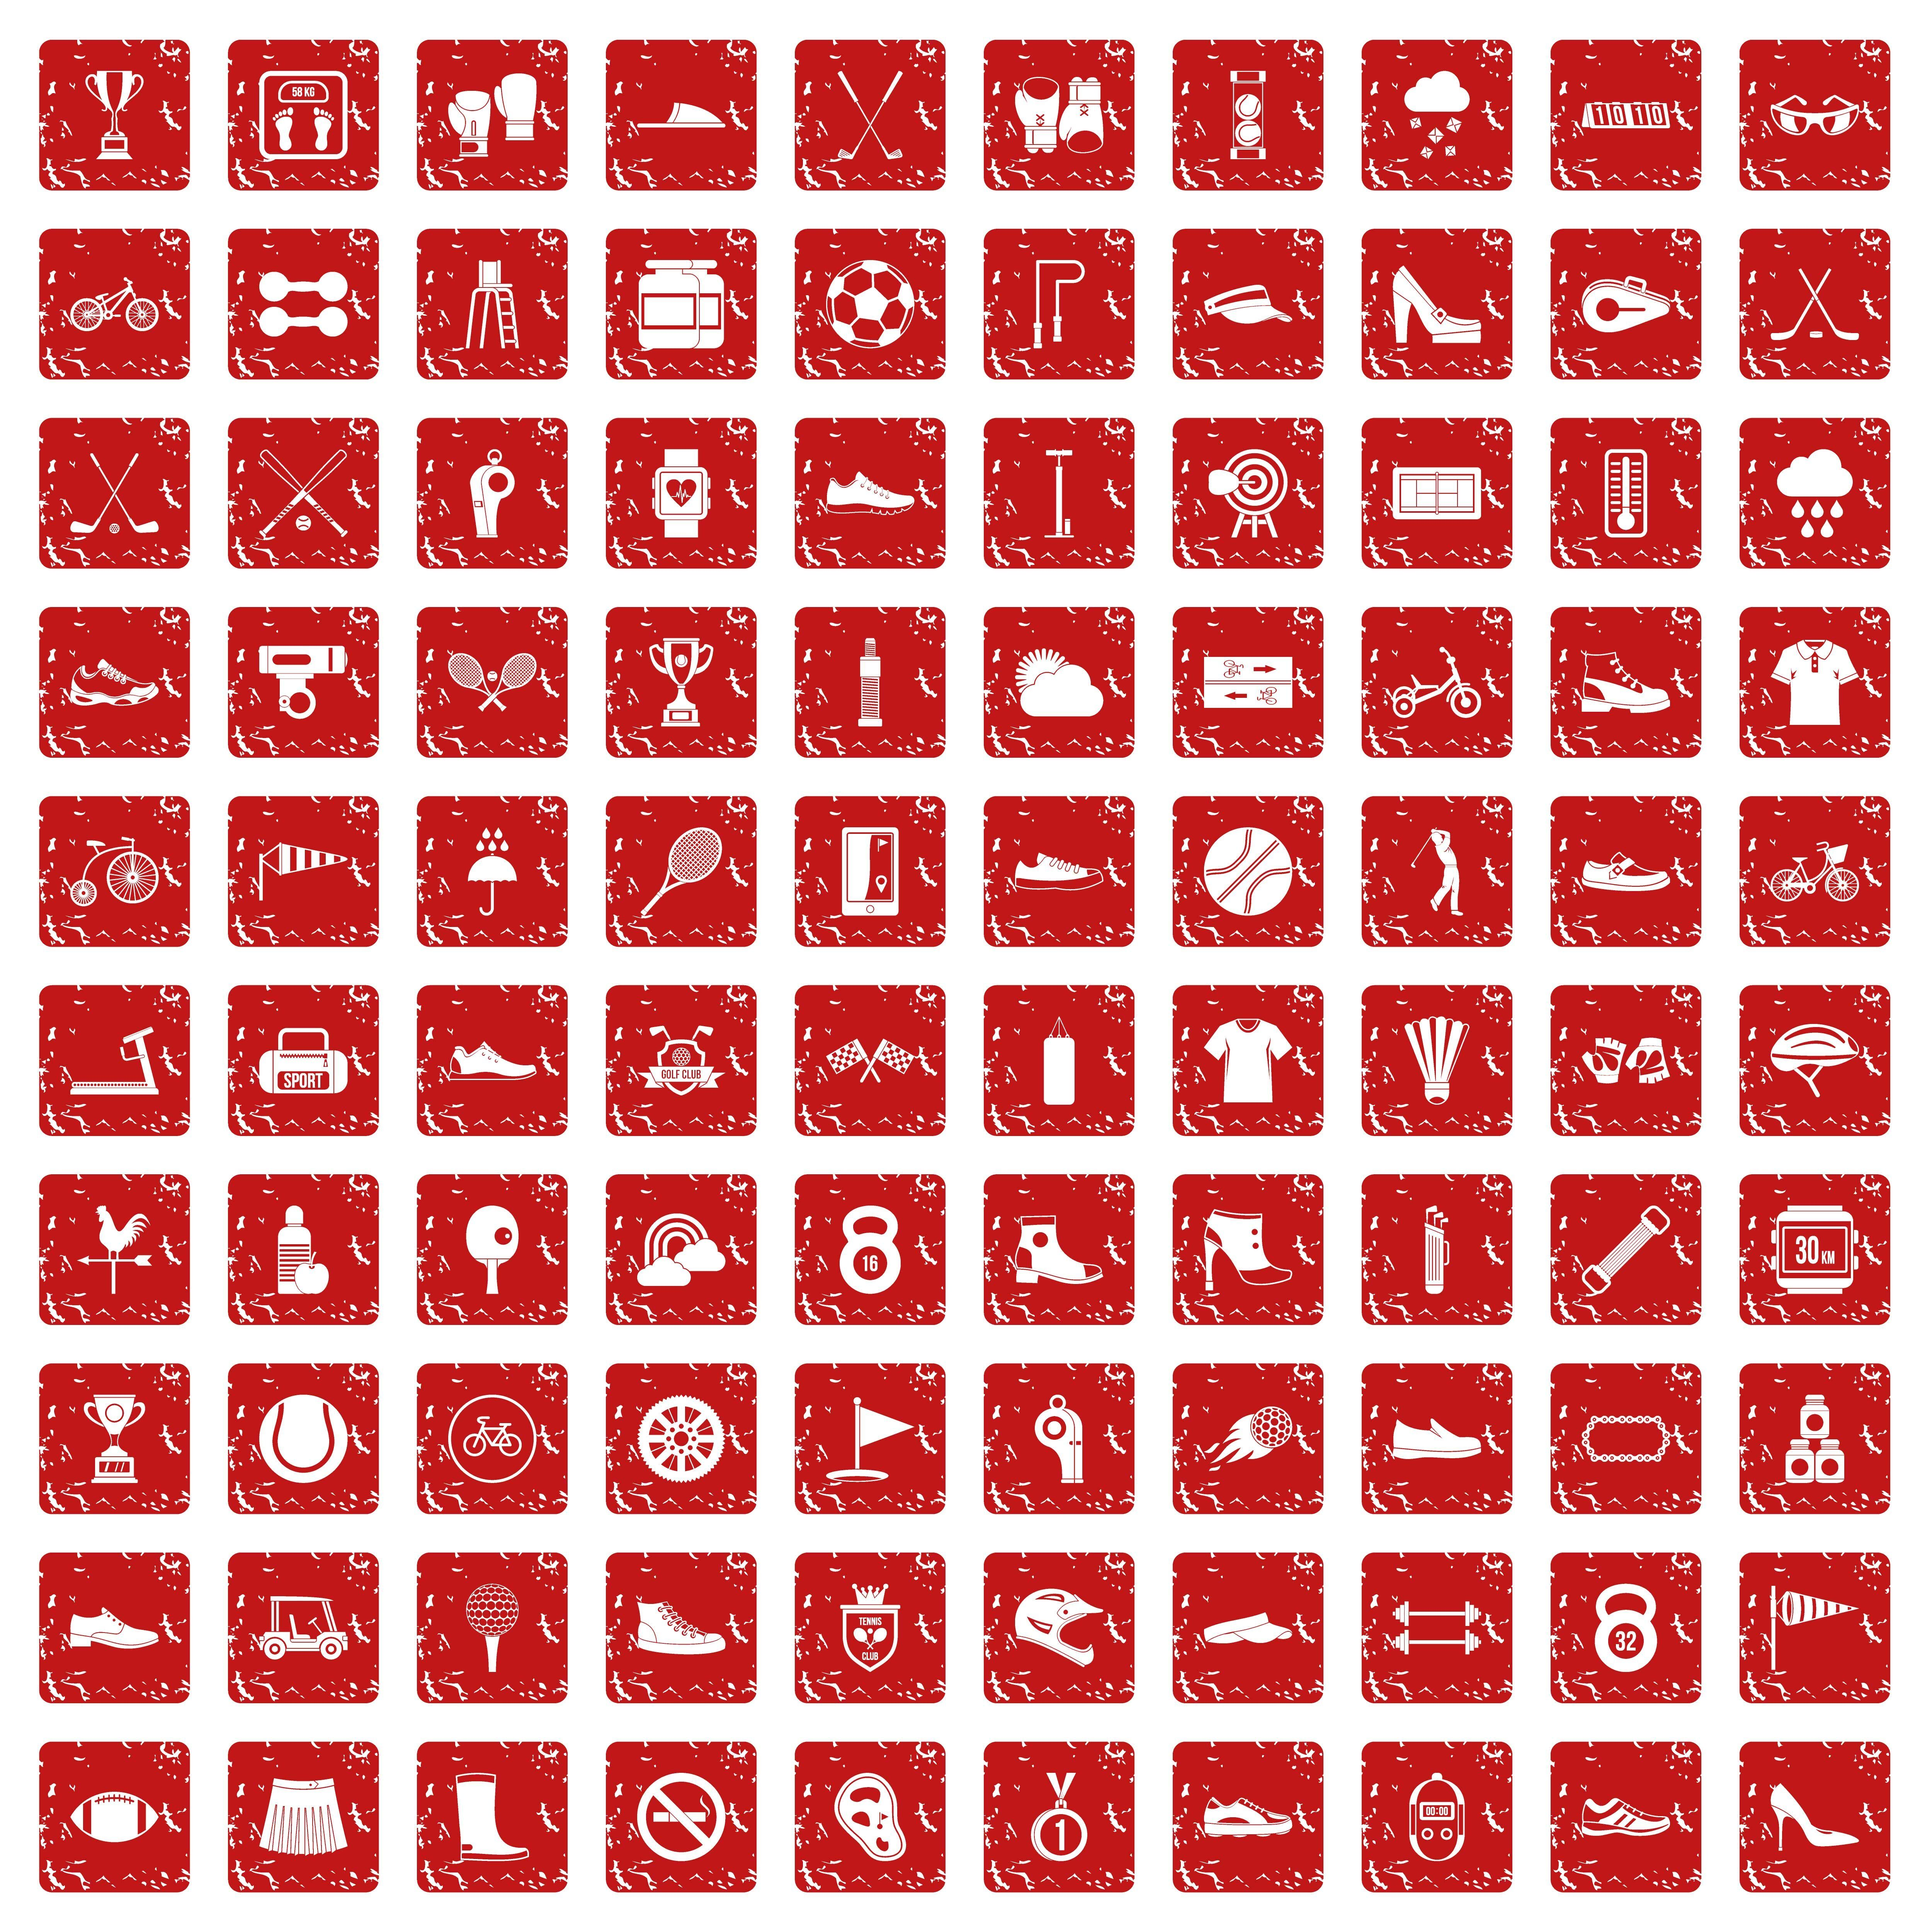 100 sneakers icons set grunge red By Ylivdesign